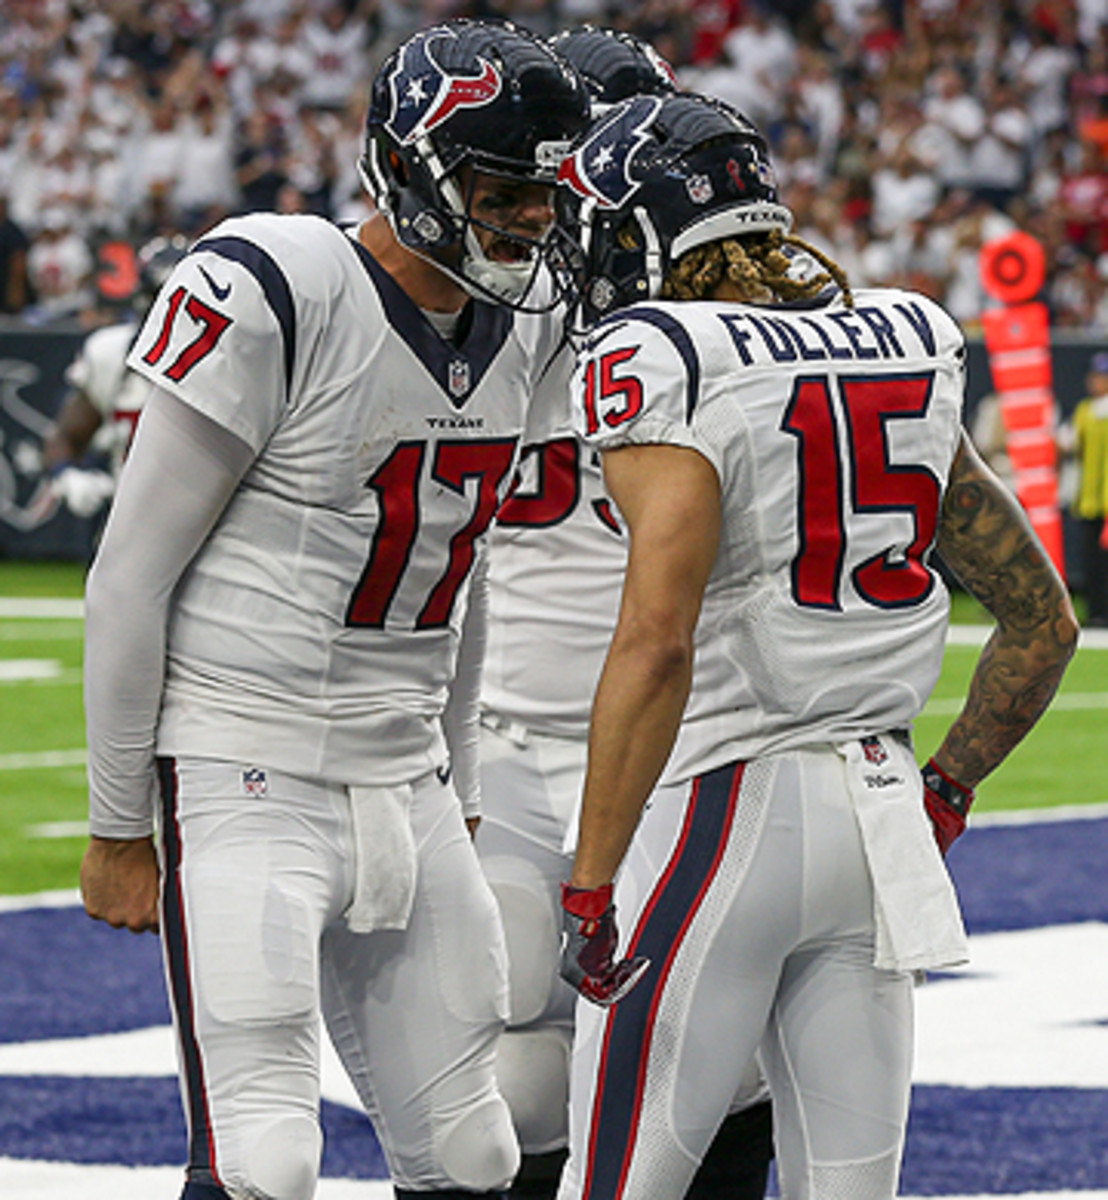 The Houston debut for Brock Osweiler and Will Fuller was a victorious one, with the Texans beating the Bears, 24-13.